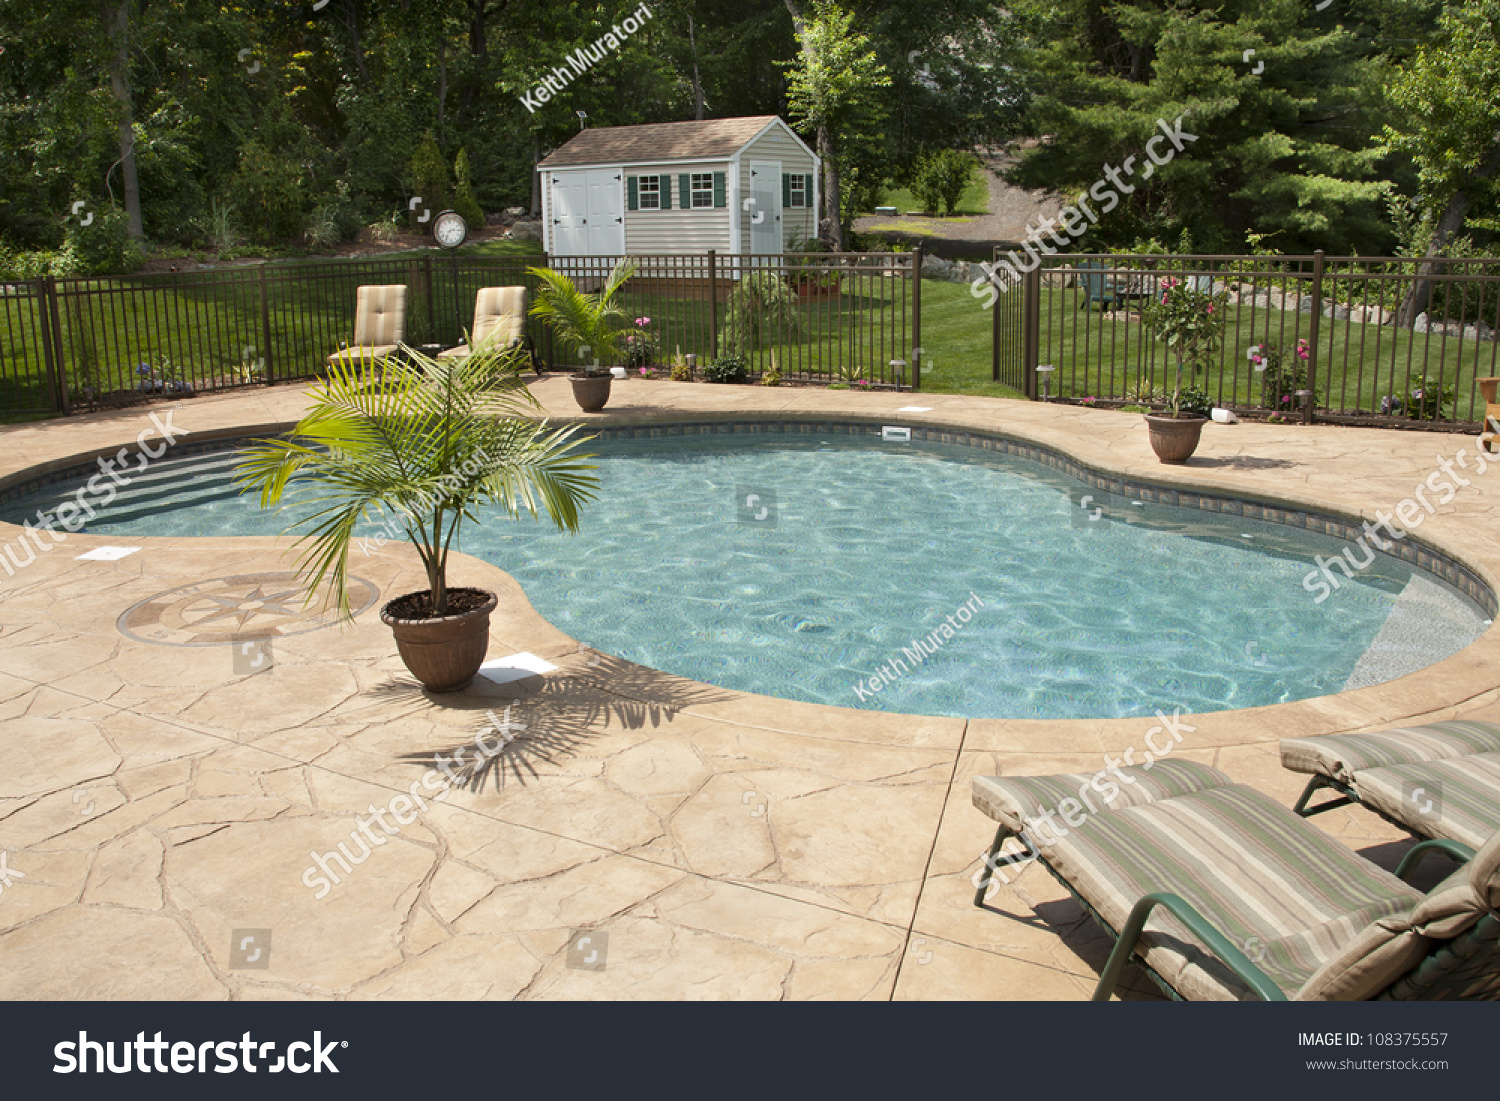 Luxury Salt Water Pool And Patio In A Residential Backyard